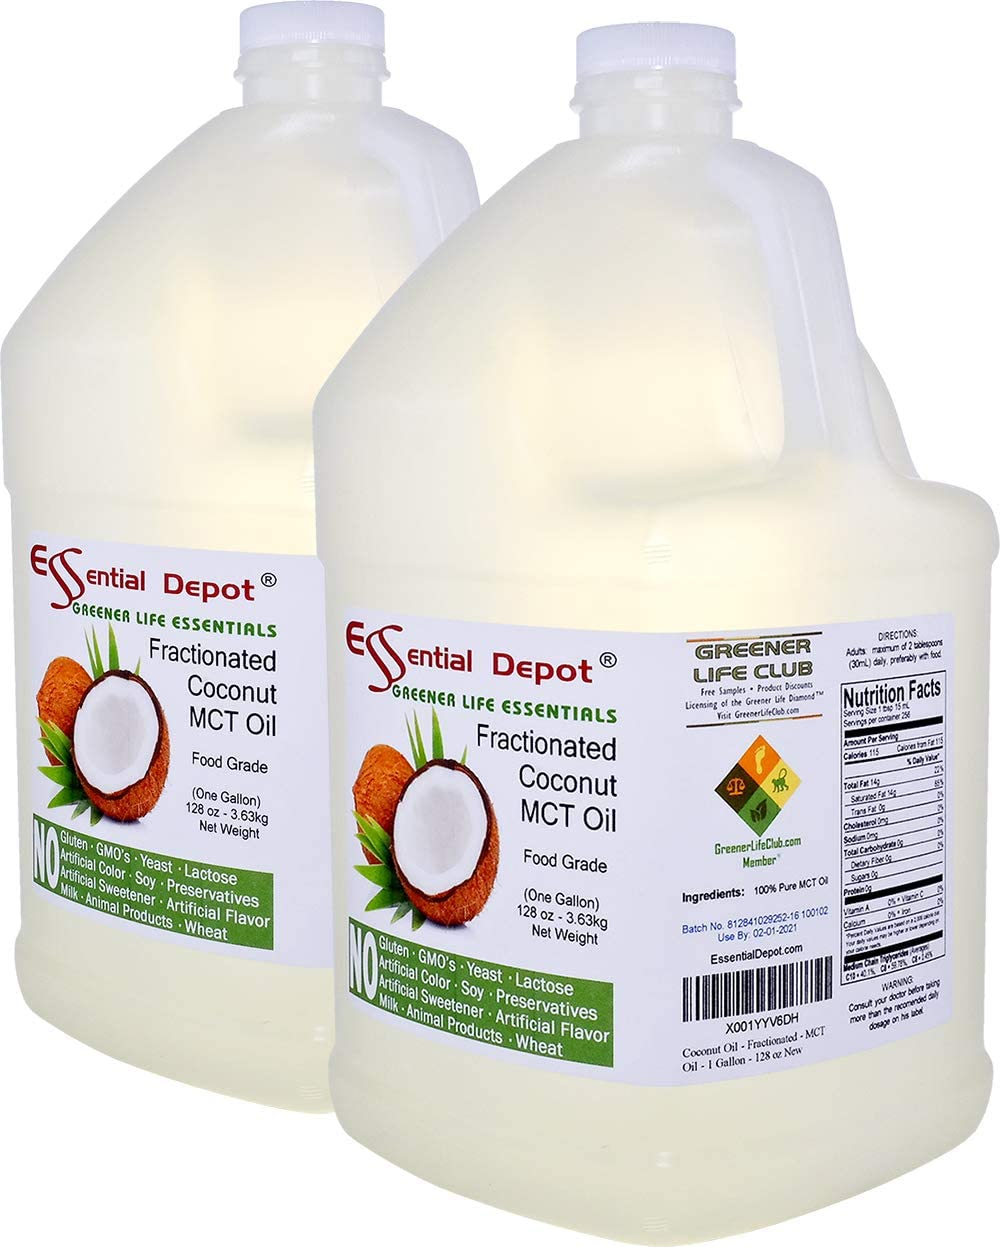 Coconut Oil - Fractionated - MCT Oil - Food Grade - 2 Gallons - 256 oz - 2 x 1 Gallon Containers -